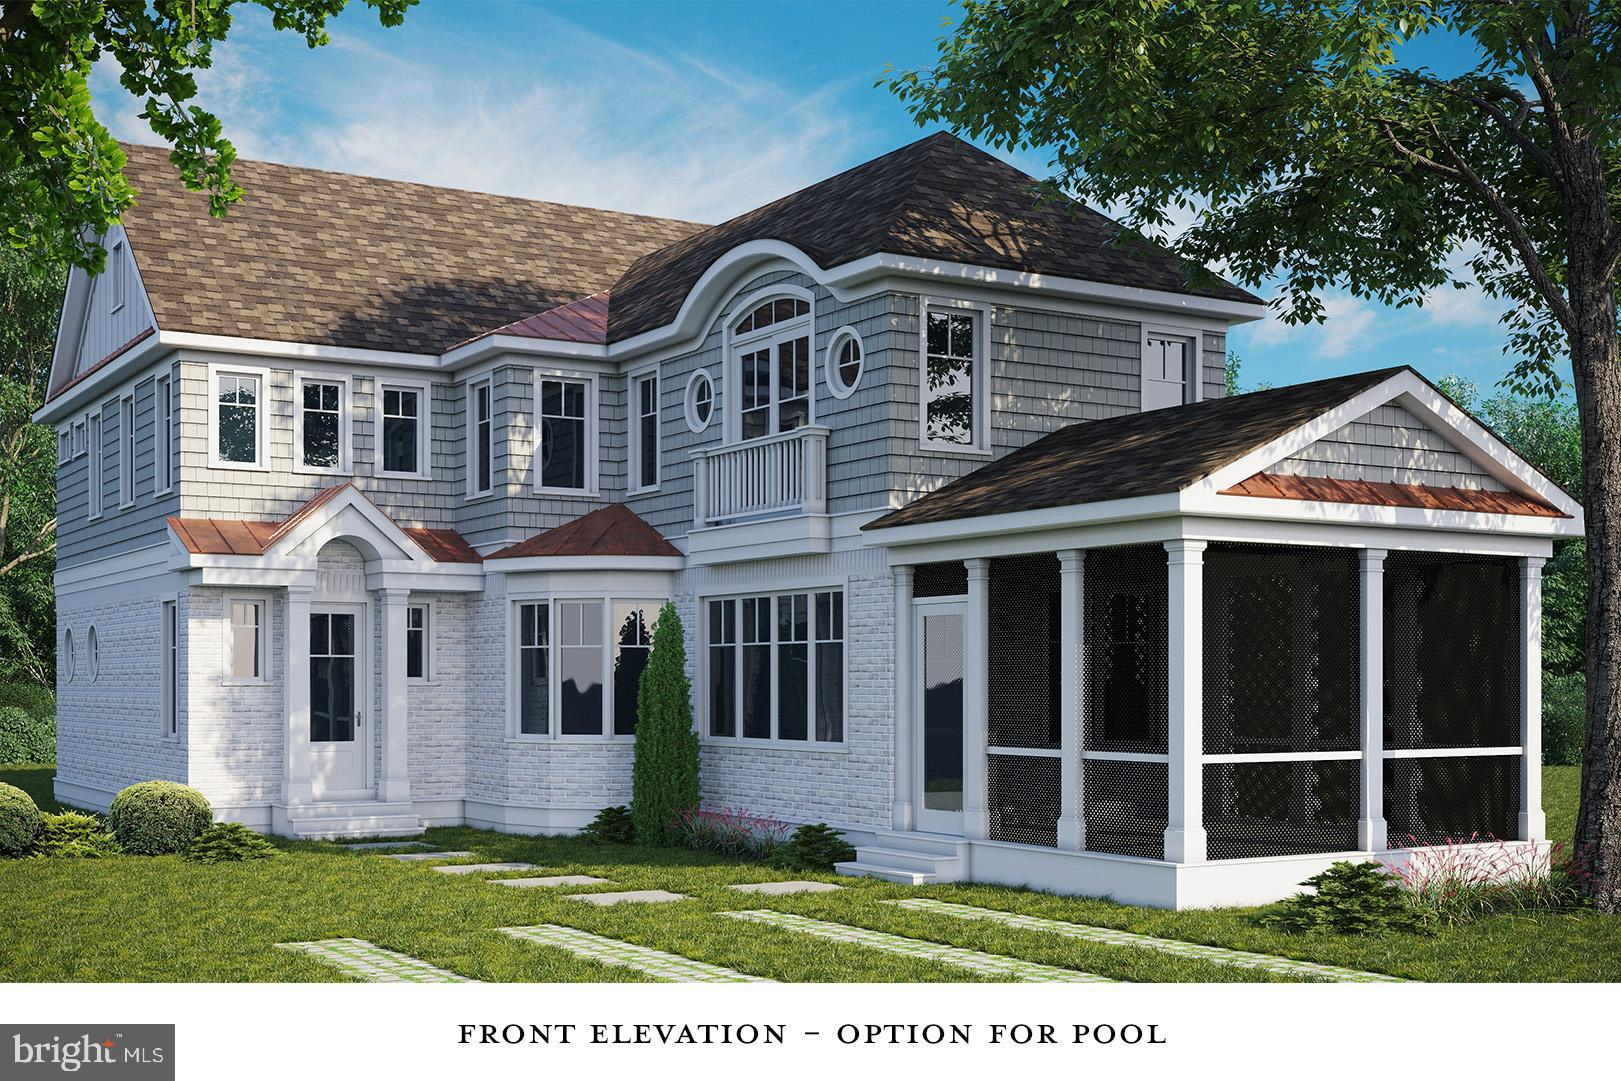 New construction in the ocean block of South Rehoboth! This custom home will include a heated in-ground pool and the ability to customize the floor plan and select your own finishes for a limited time. The proposed plan features 5 bedrooms, 4.5 baths, 2,500+/- square feet, 10 ft ceilings, hardwood floors through-out, gas fireplace, and a light filled open floor plan. The first floor boasts a gourmet kitchen with custom cabinetry, stone counters, large island, Sub-Zero/Wolf appliance package and a beautiful tile backsplash. The spacious 1st floor master features a gorgeous tiled bathroom and walk-in closet. The great room with dining area is flanked by the kitchen and a large screened porch. The exterior features a fenced courtyard that greets you at the entrance and will be beautifully landscaped to create a sanctuary by the pool. Excellent opportunity on one of the most coveted locations in Rehoboth Beach!